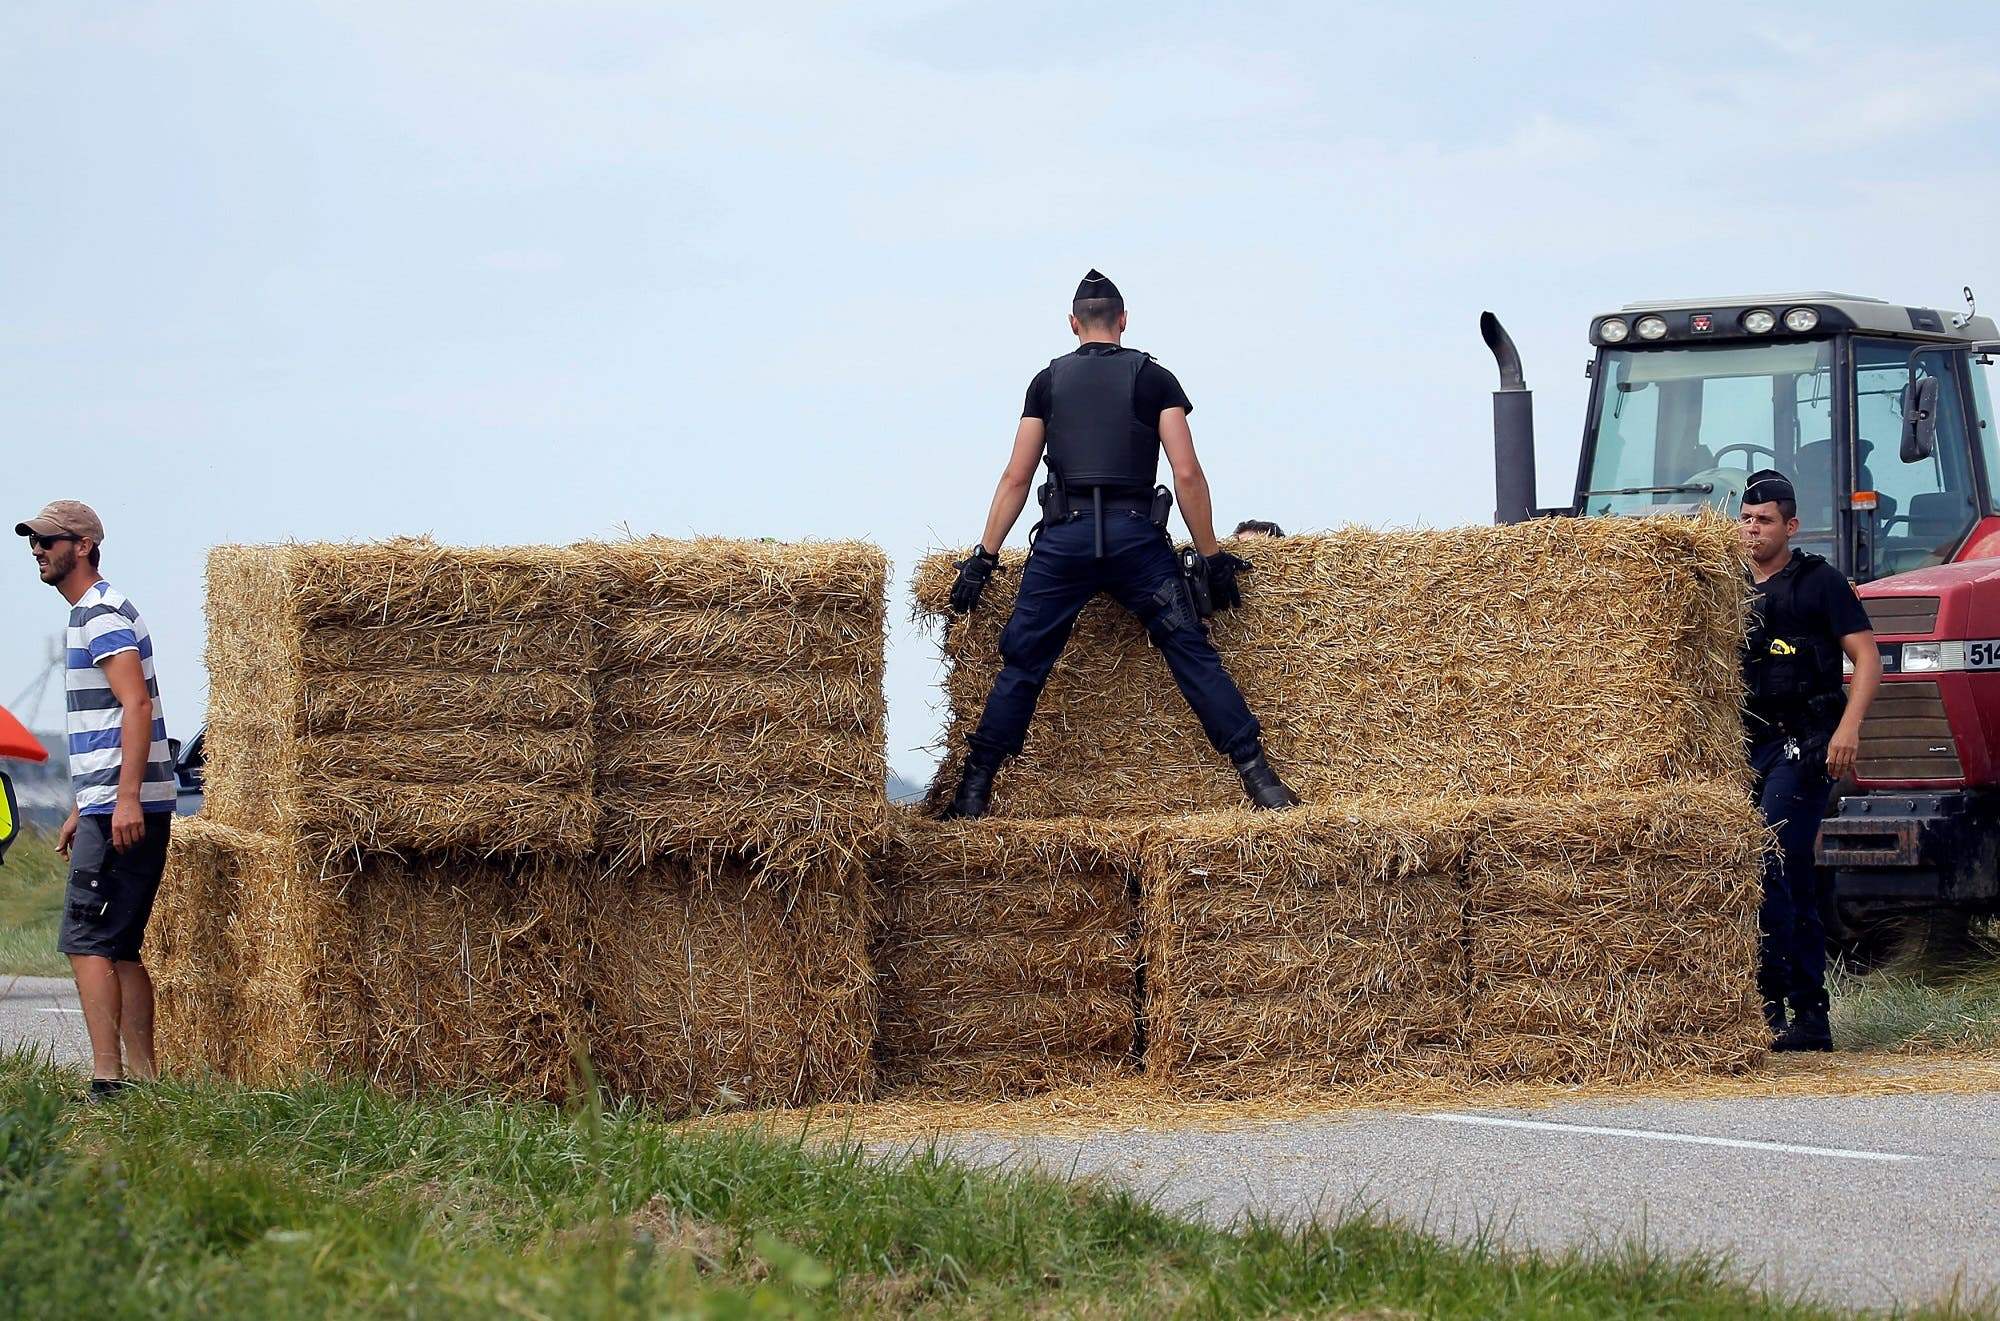 Police officers remove hay bales off the road after the protest on July 24, 2018. (Reuters)